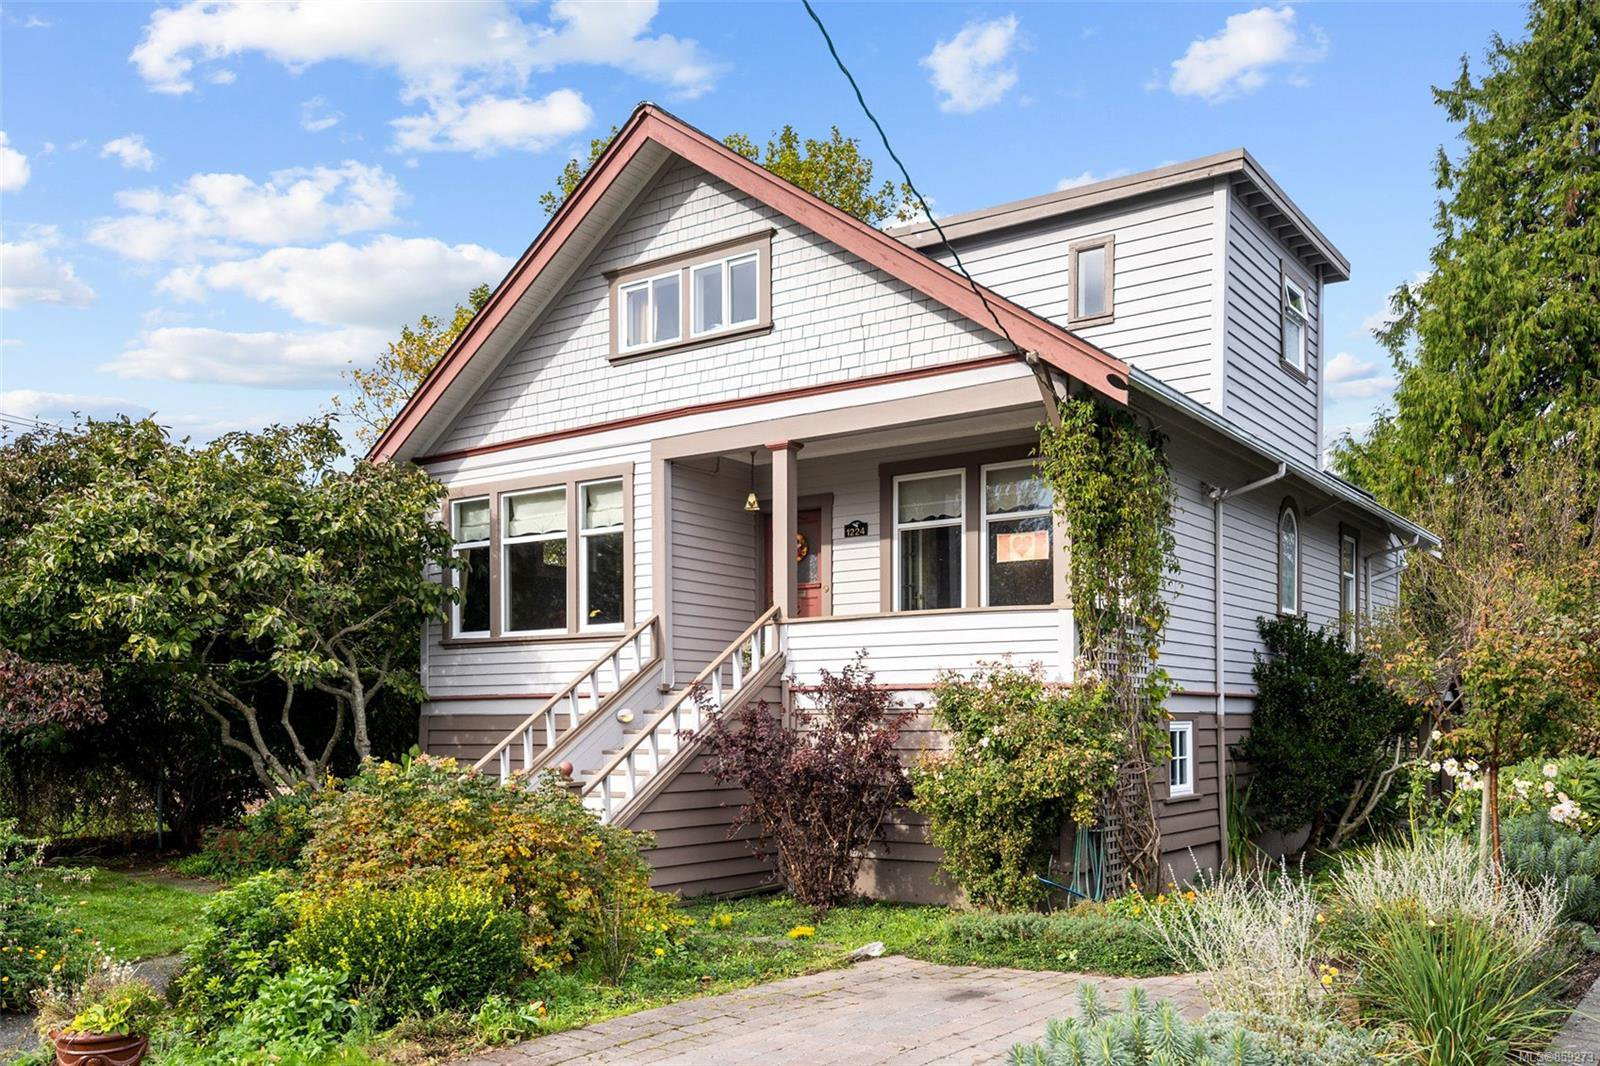 Main Photo: 1224 Chapman St in : Vi Fairfield West House for sale (Victoria)  : MLS®# 859273